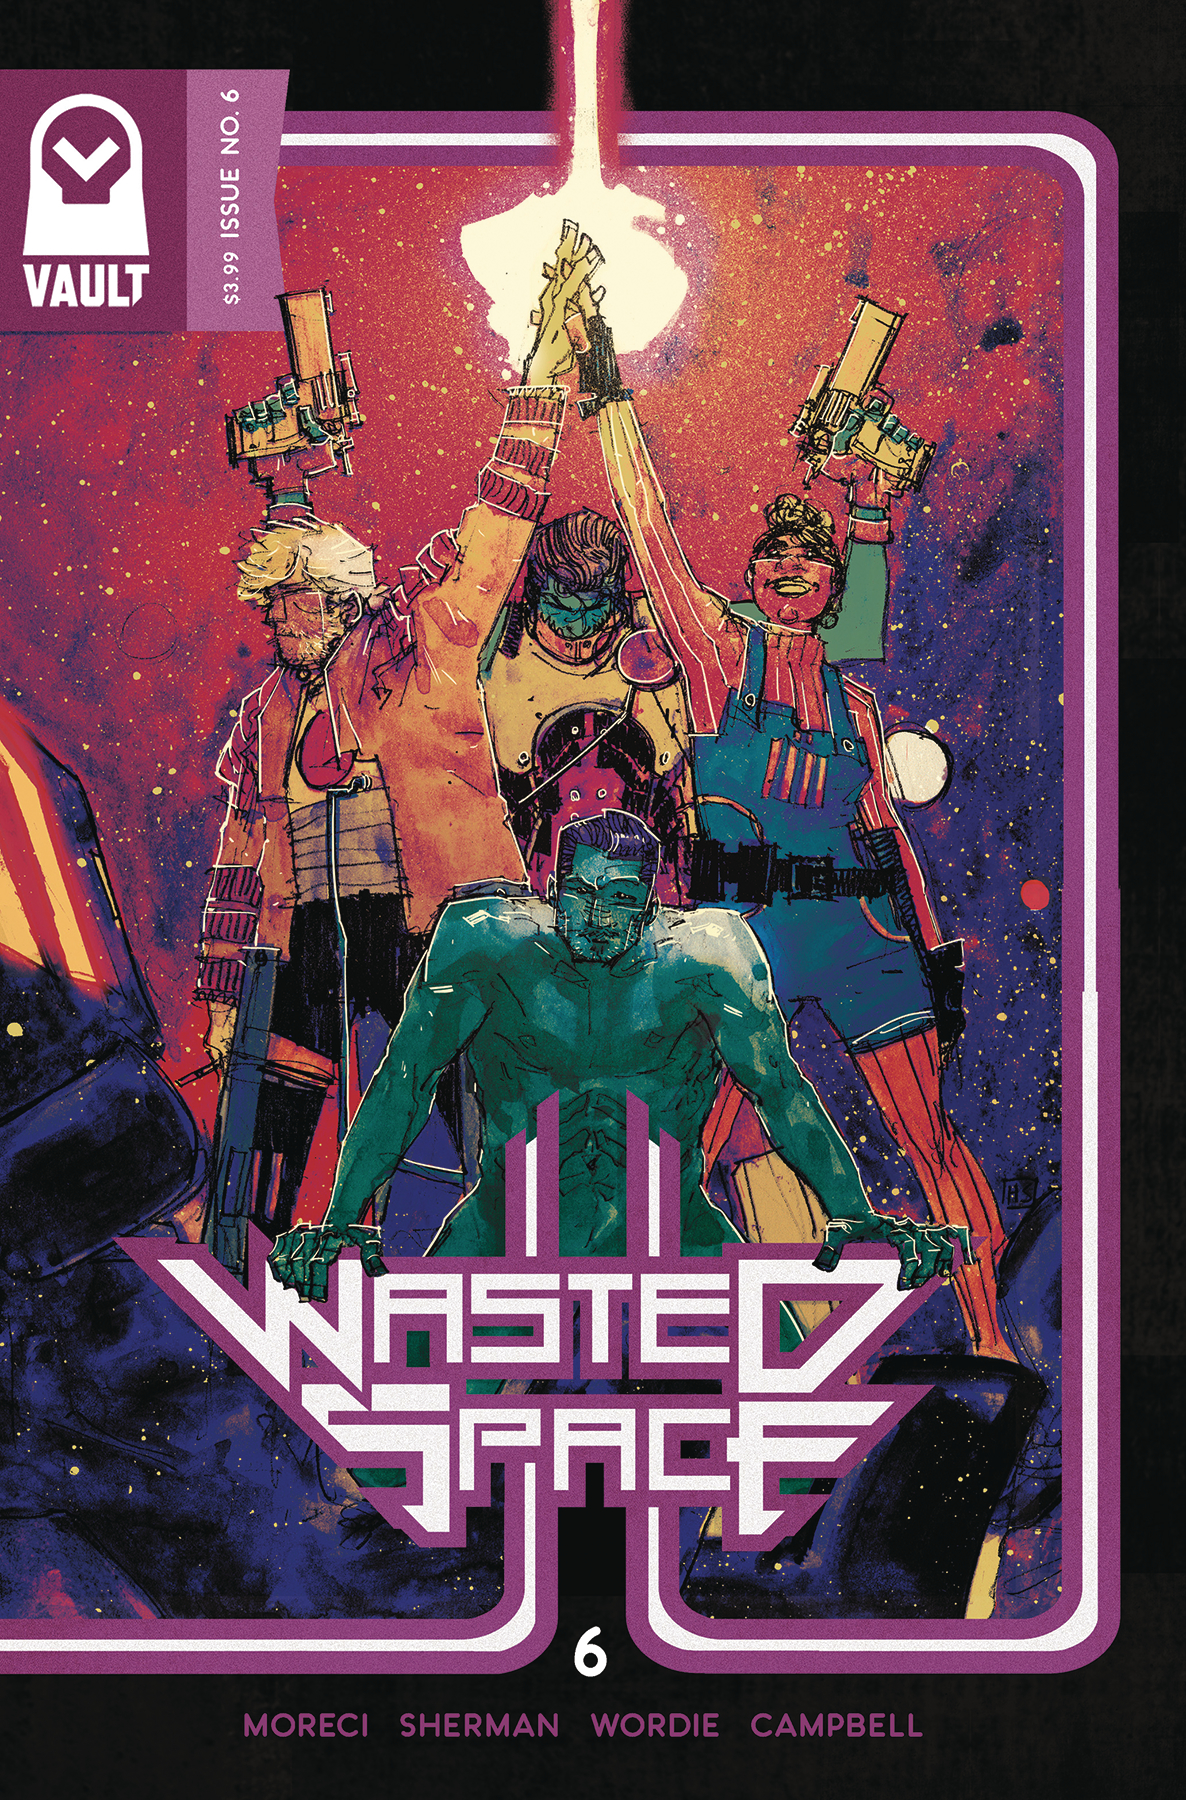 Wasted Space #6  is out 2/6/2019.